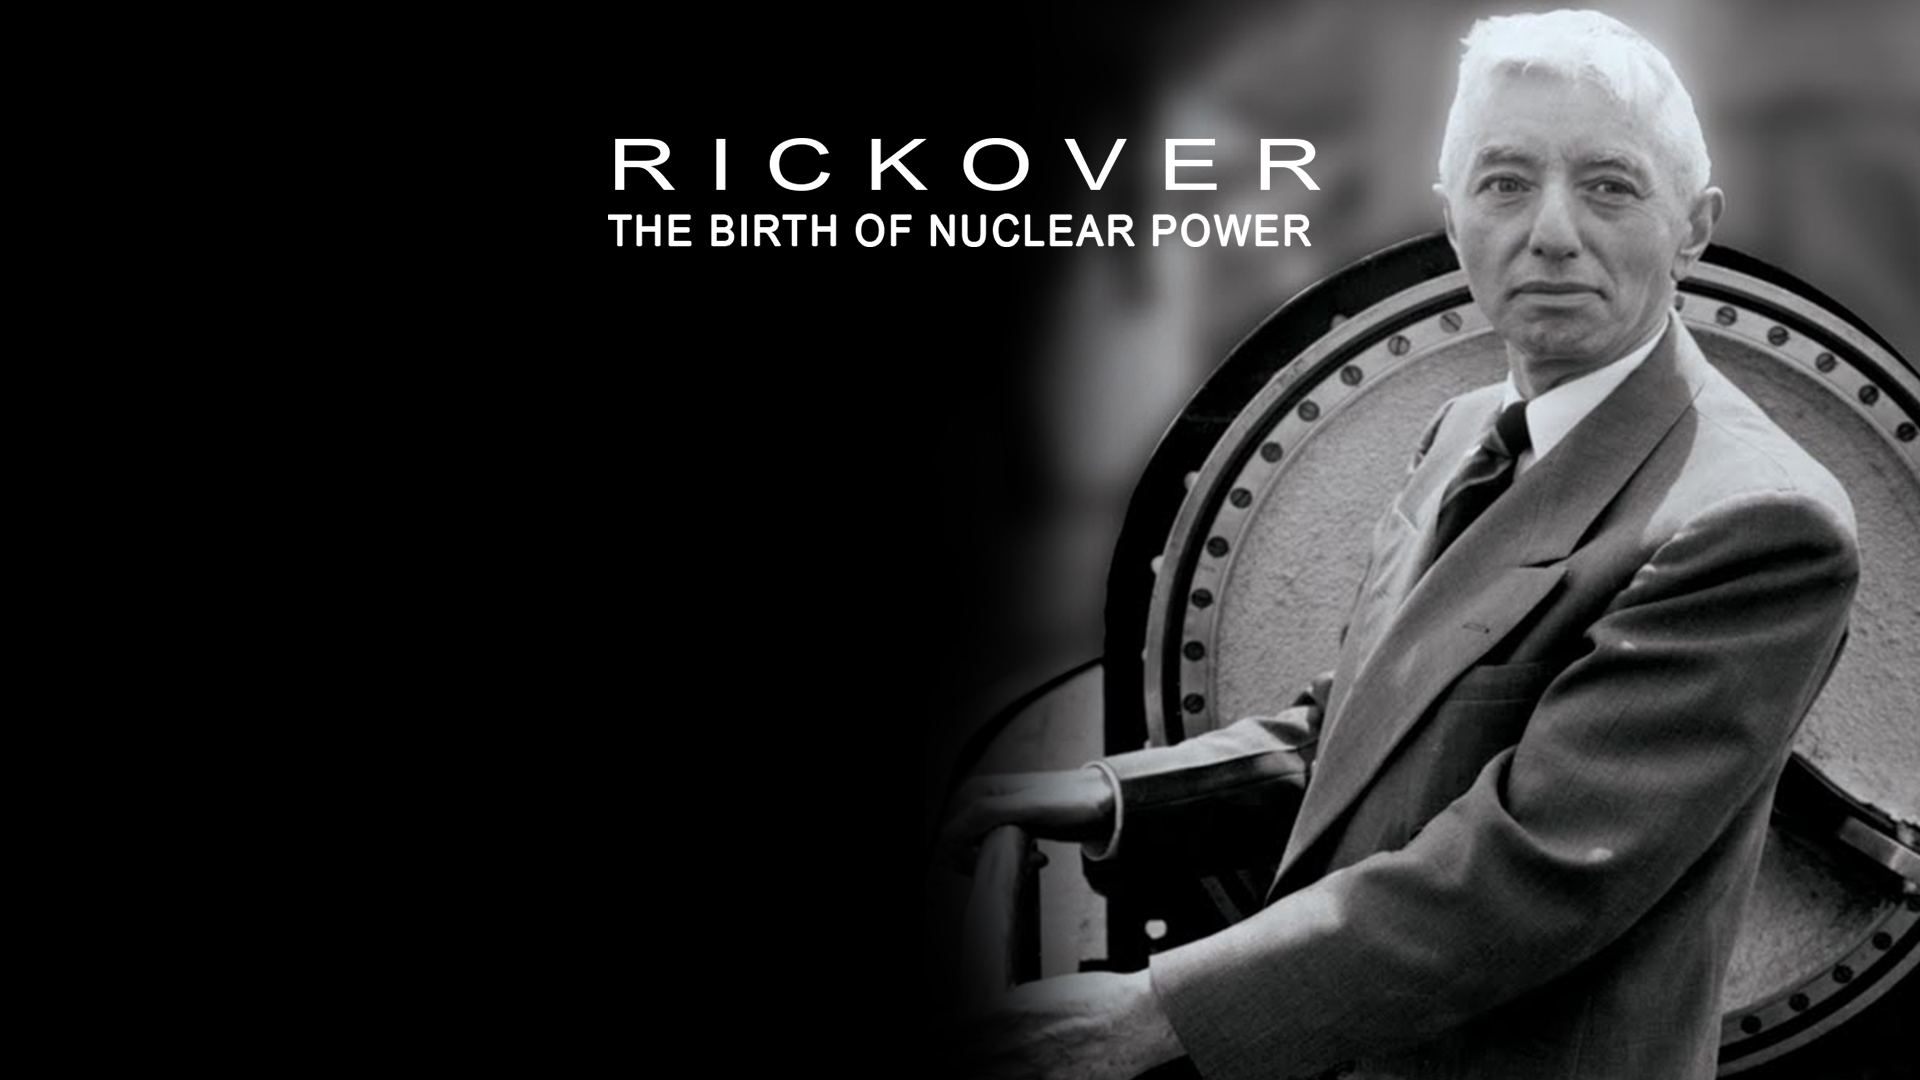 Rickover: The Birth of Nuclear Power